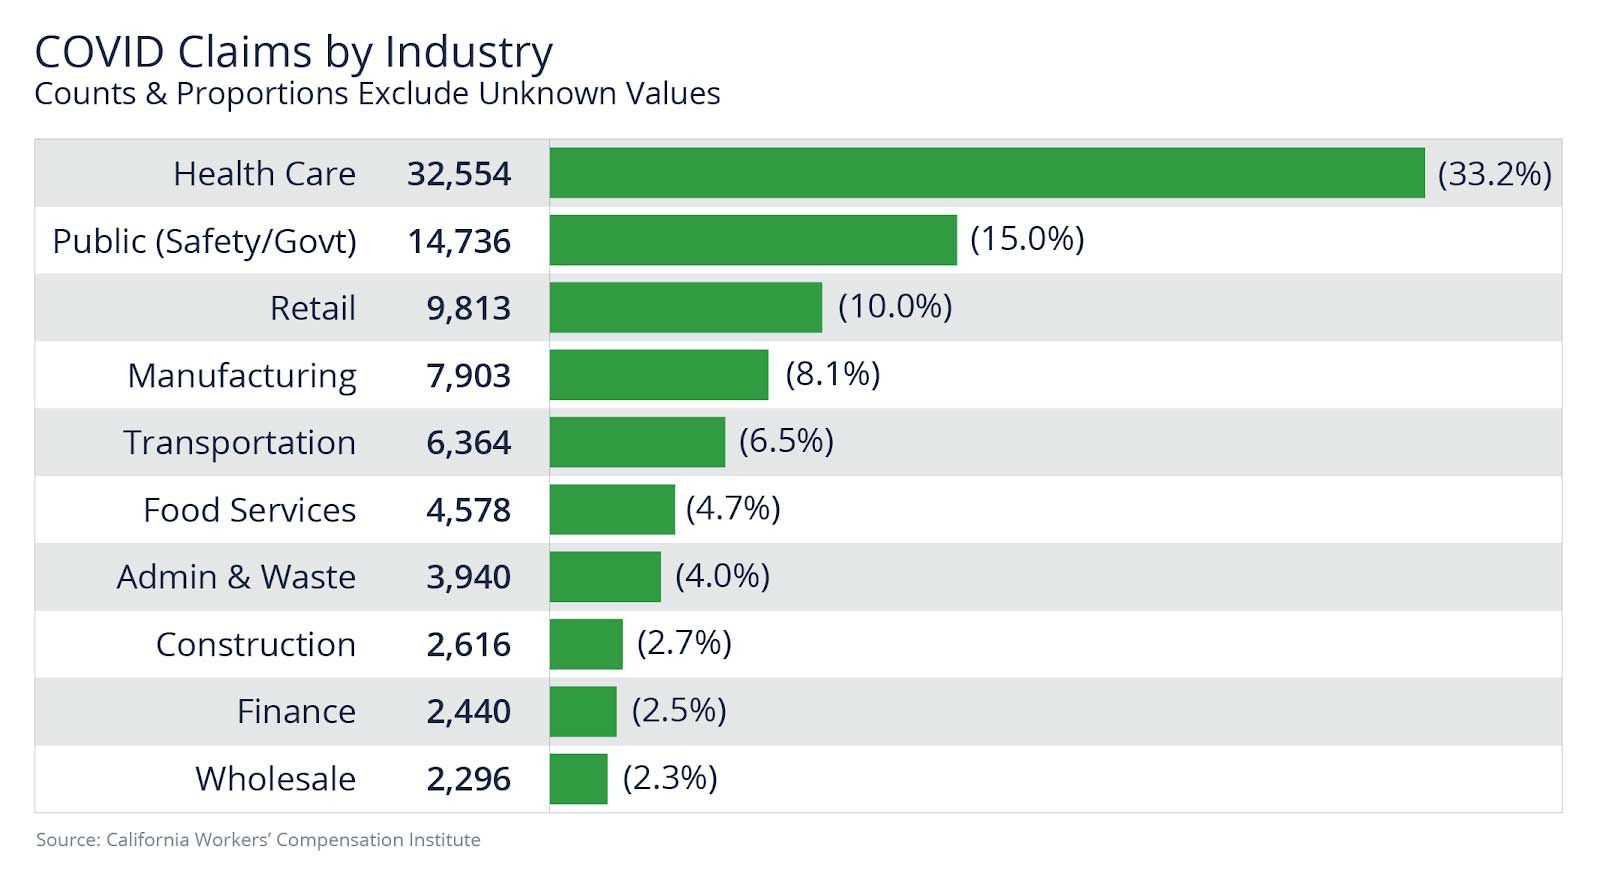 COVID claims are highest in Healthcare and Public (safety/government) industries